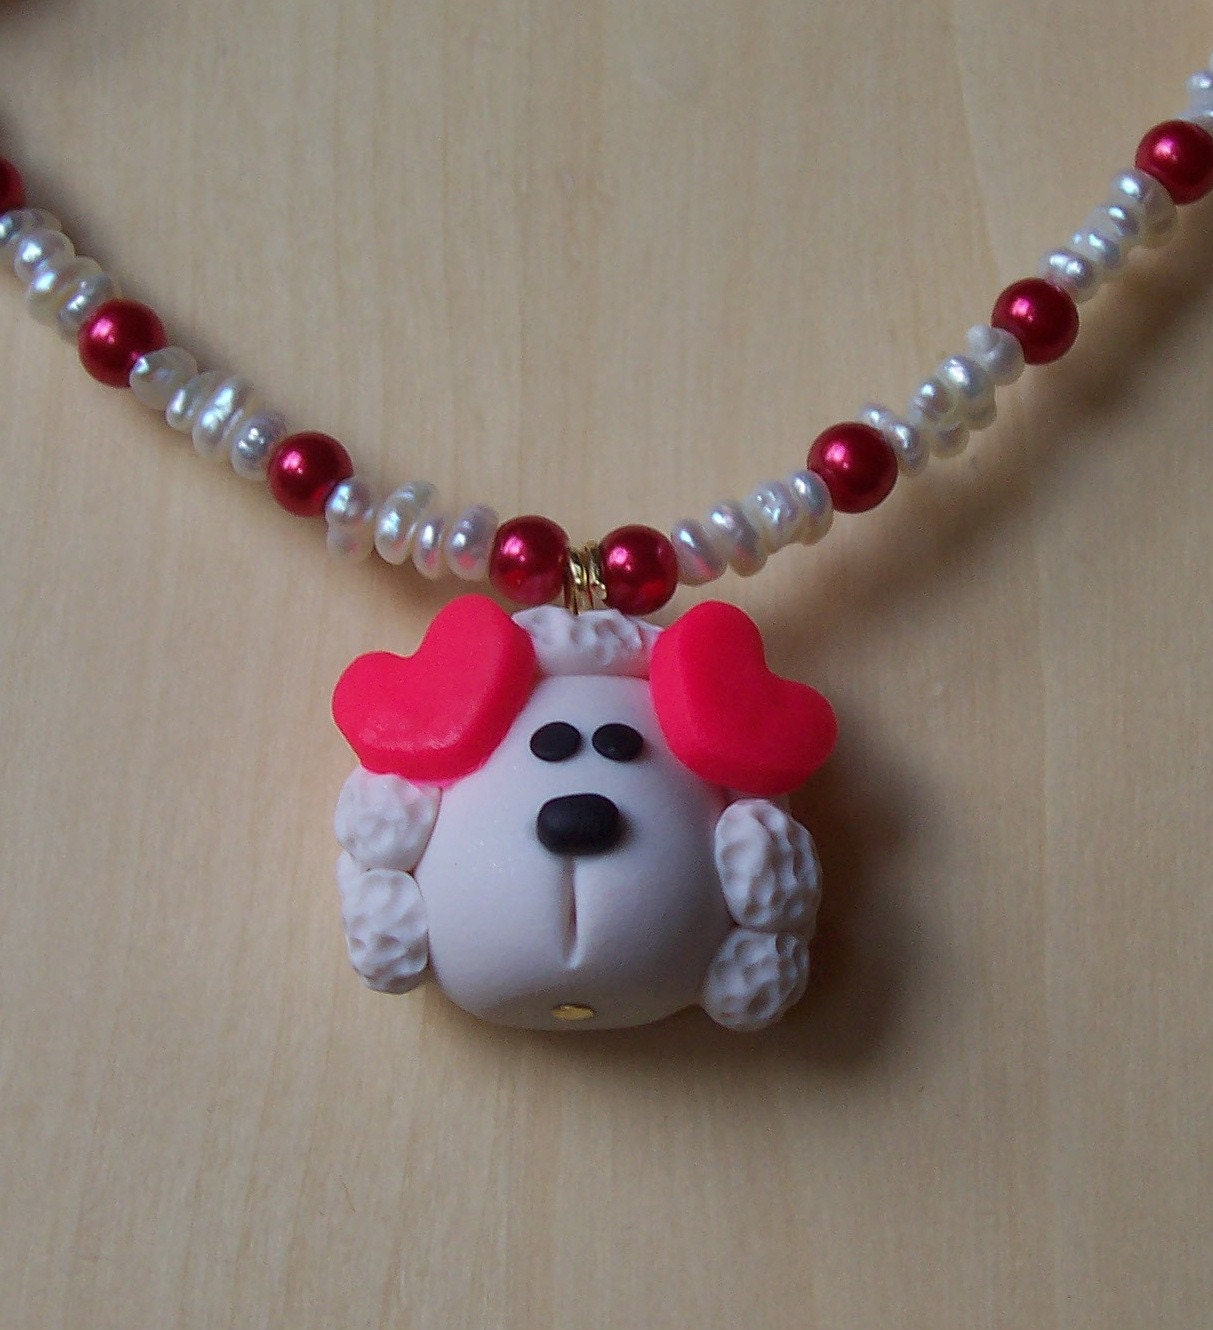 LOVING POODLE puppy necklace for girls children boutique style